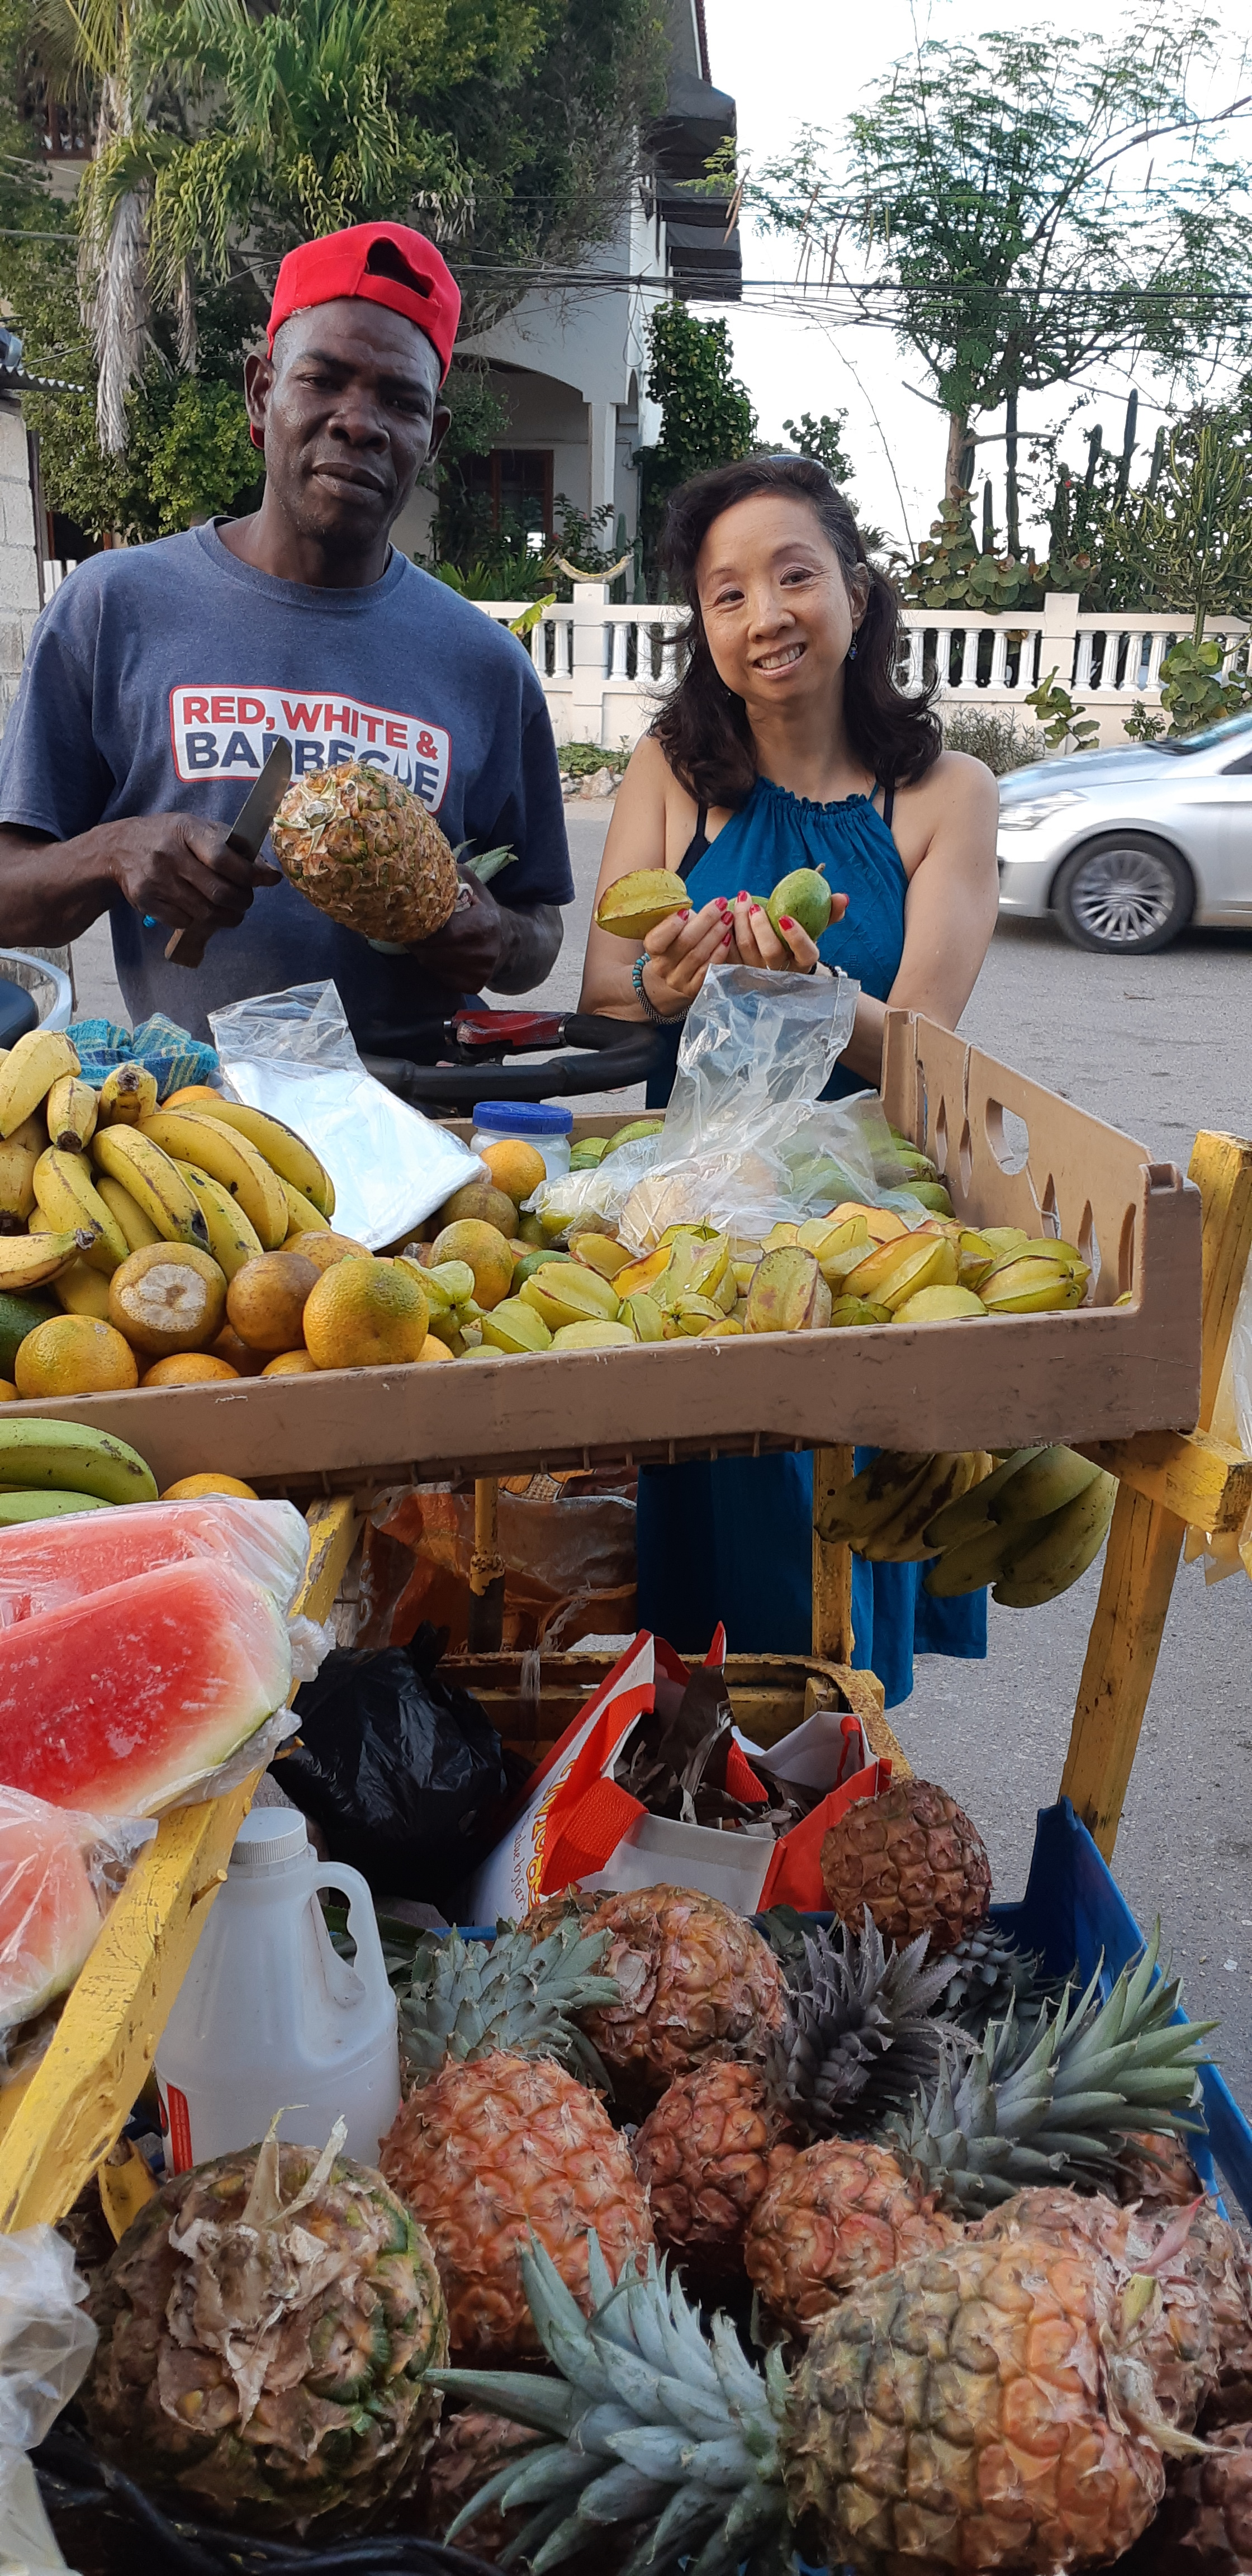 Fresh Local Fruits - are always the best!Enjoy the Juicy Goodness of Pineapple, Mango, June Plums, Oranges, Bananas, Star Apple and the list goes on!